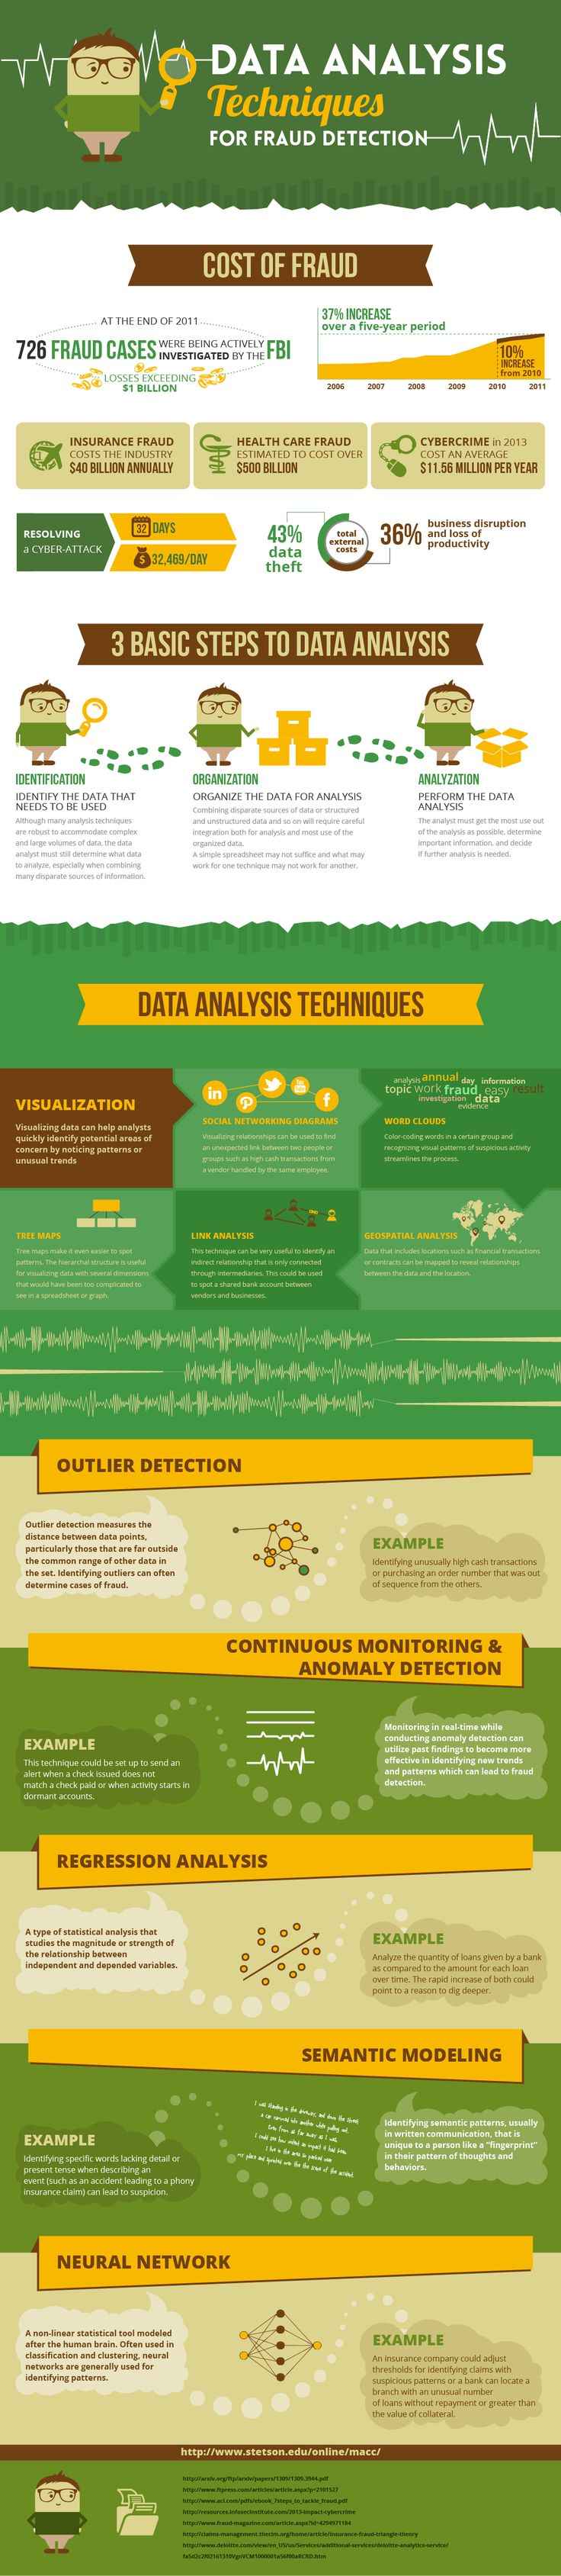 How to Detect Fraud Using Data Analysis (Infographic) | Inc.com